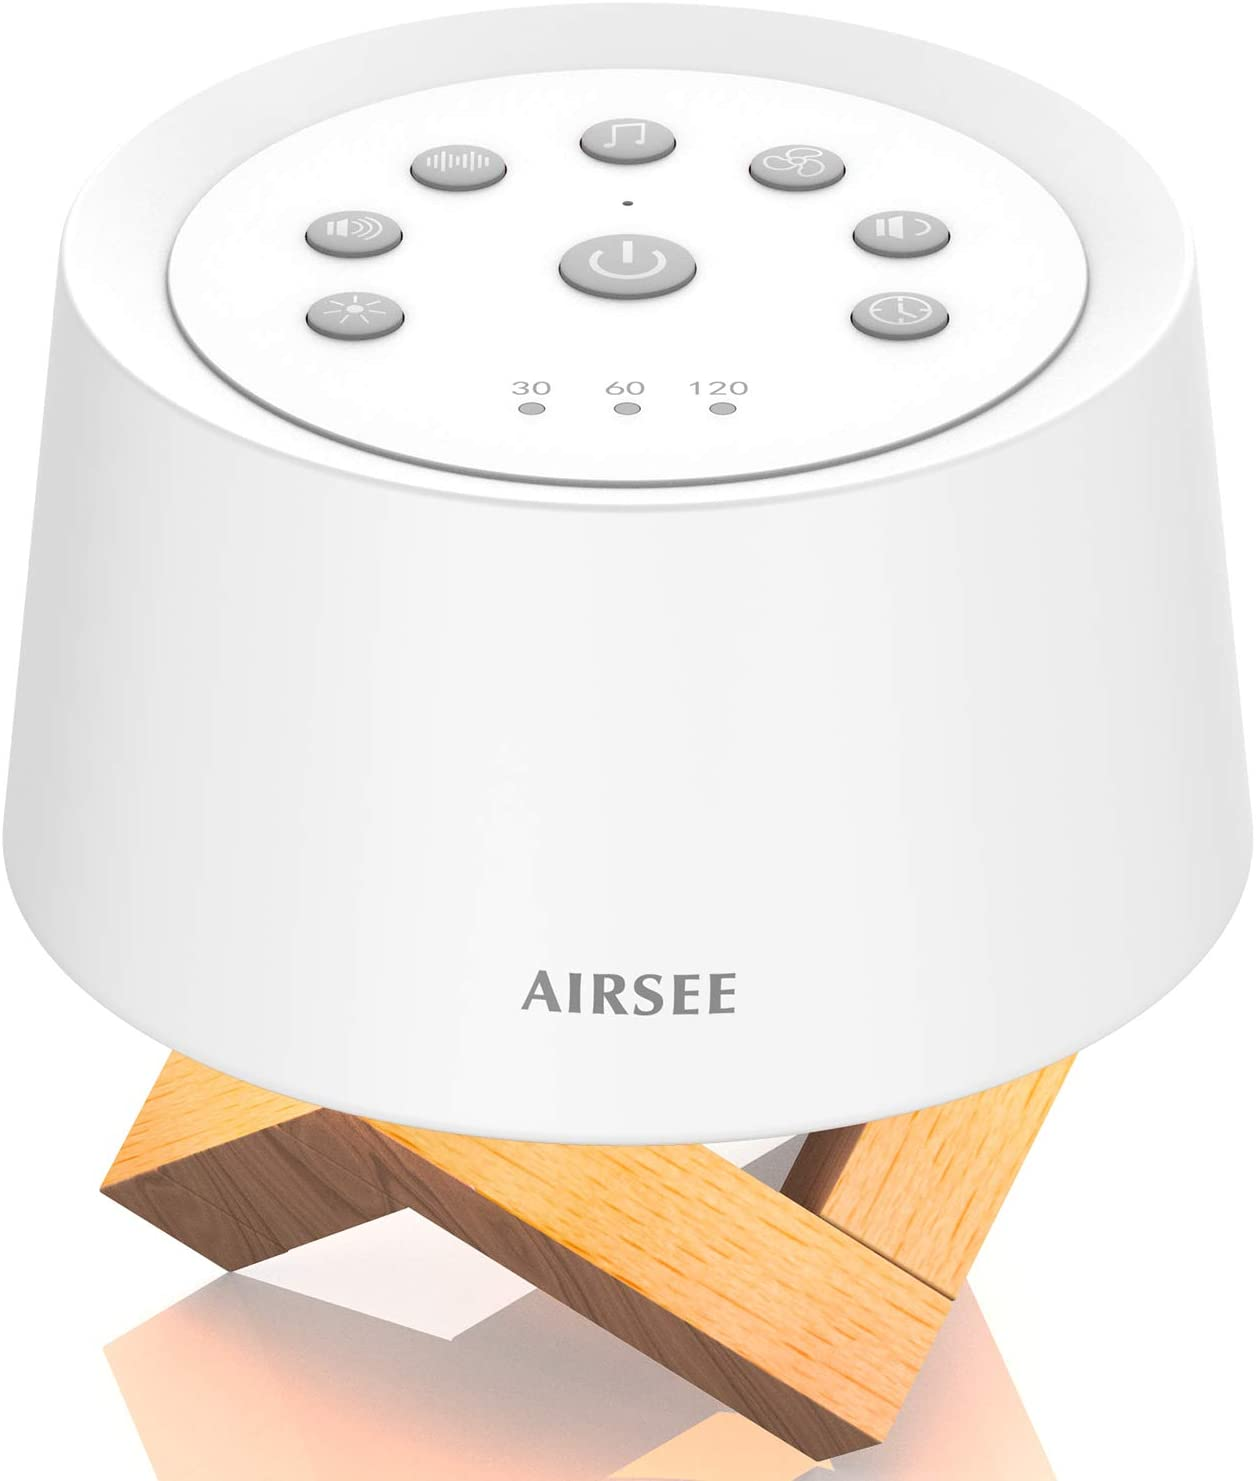 AIRSEE Sound Machine & Night Light, Rechargeable White Noise Machine with 31 Soothing Sounds for Sleeping, Breathing Lamp & Memory Feature, Sleep Sound Noise for Home and Travel (Upgraded)